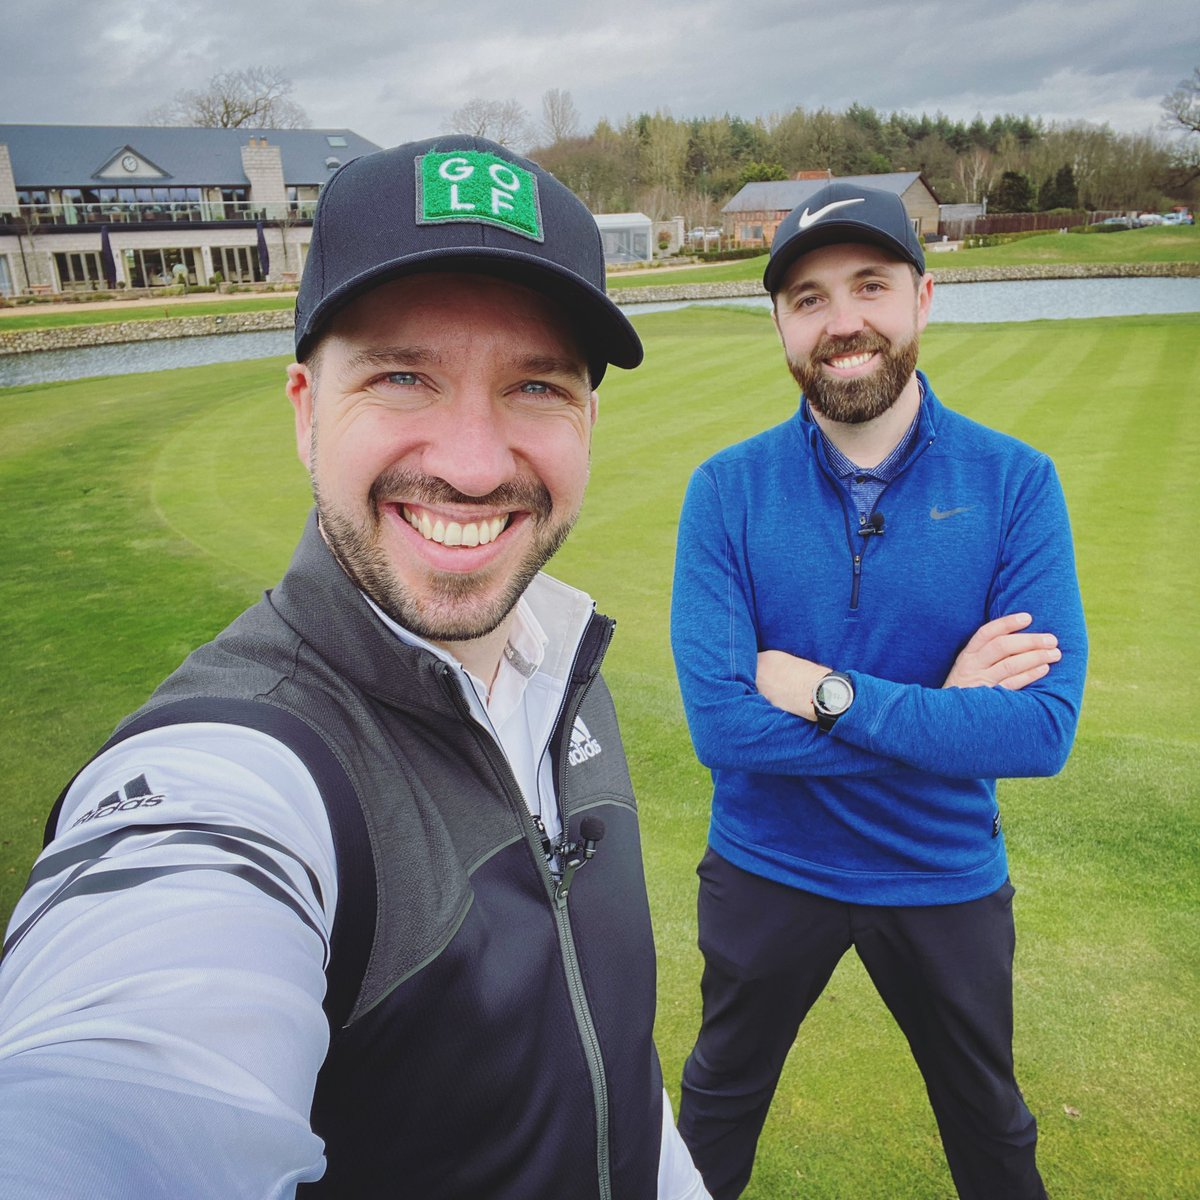 Peter Finch On Twitter No Masters This Year But There Will Be The Golfbidder 2nd Hand Challenge With Me And Rickshielspga The First Vid Will Drop April 8th Who S Excited Golf Lovegolf Golfbidder